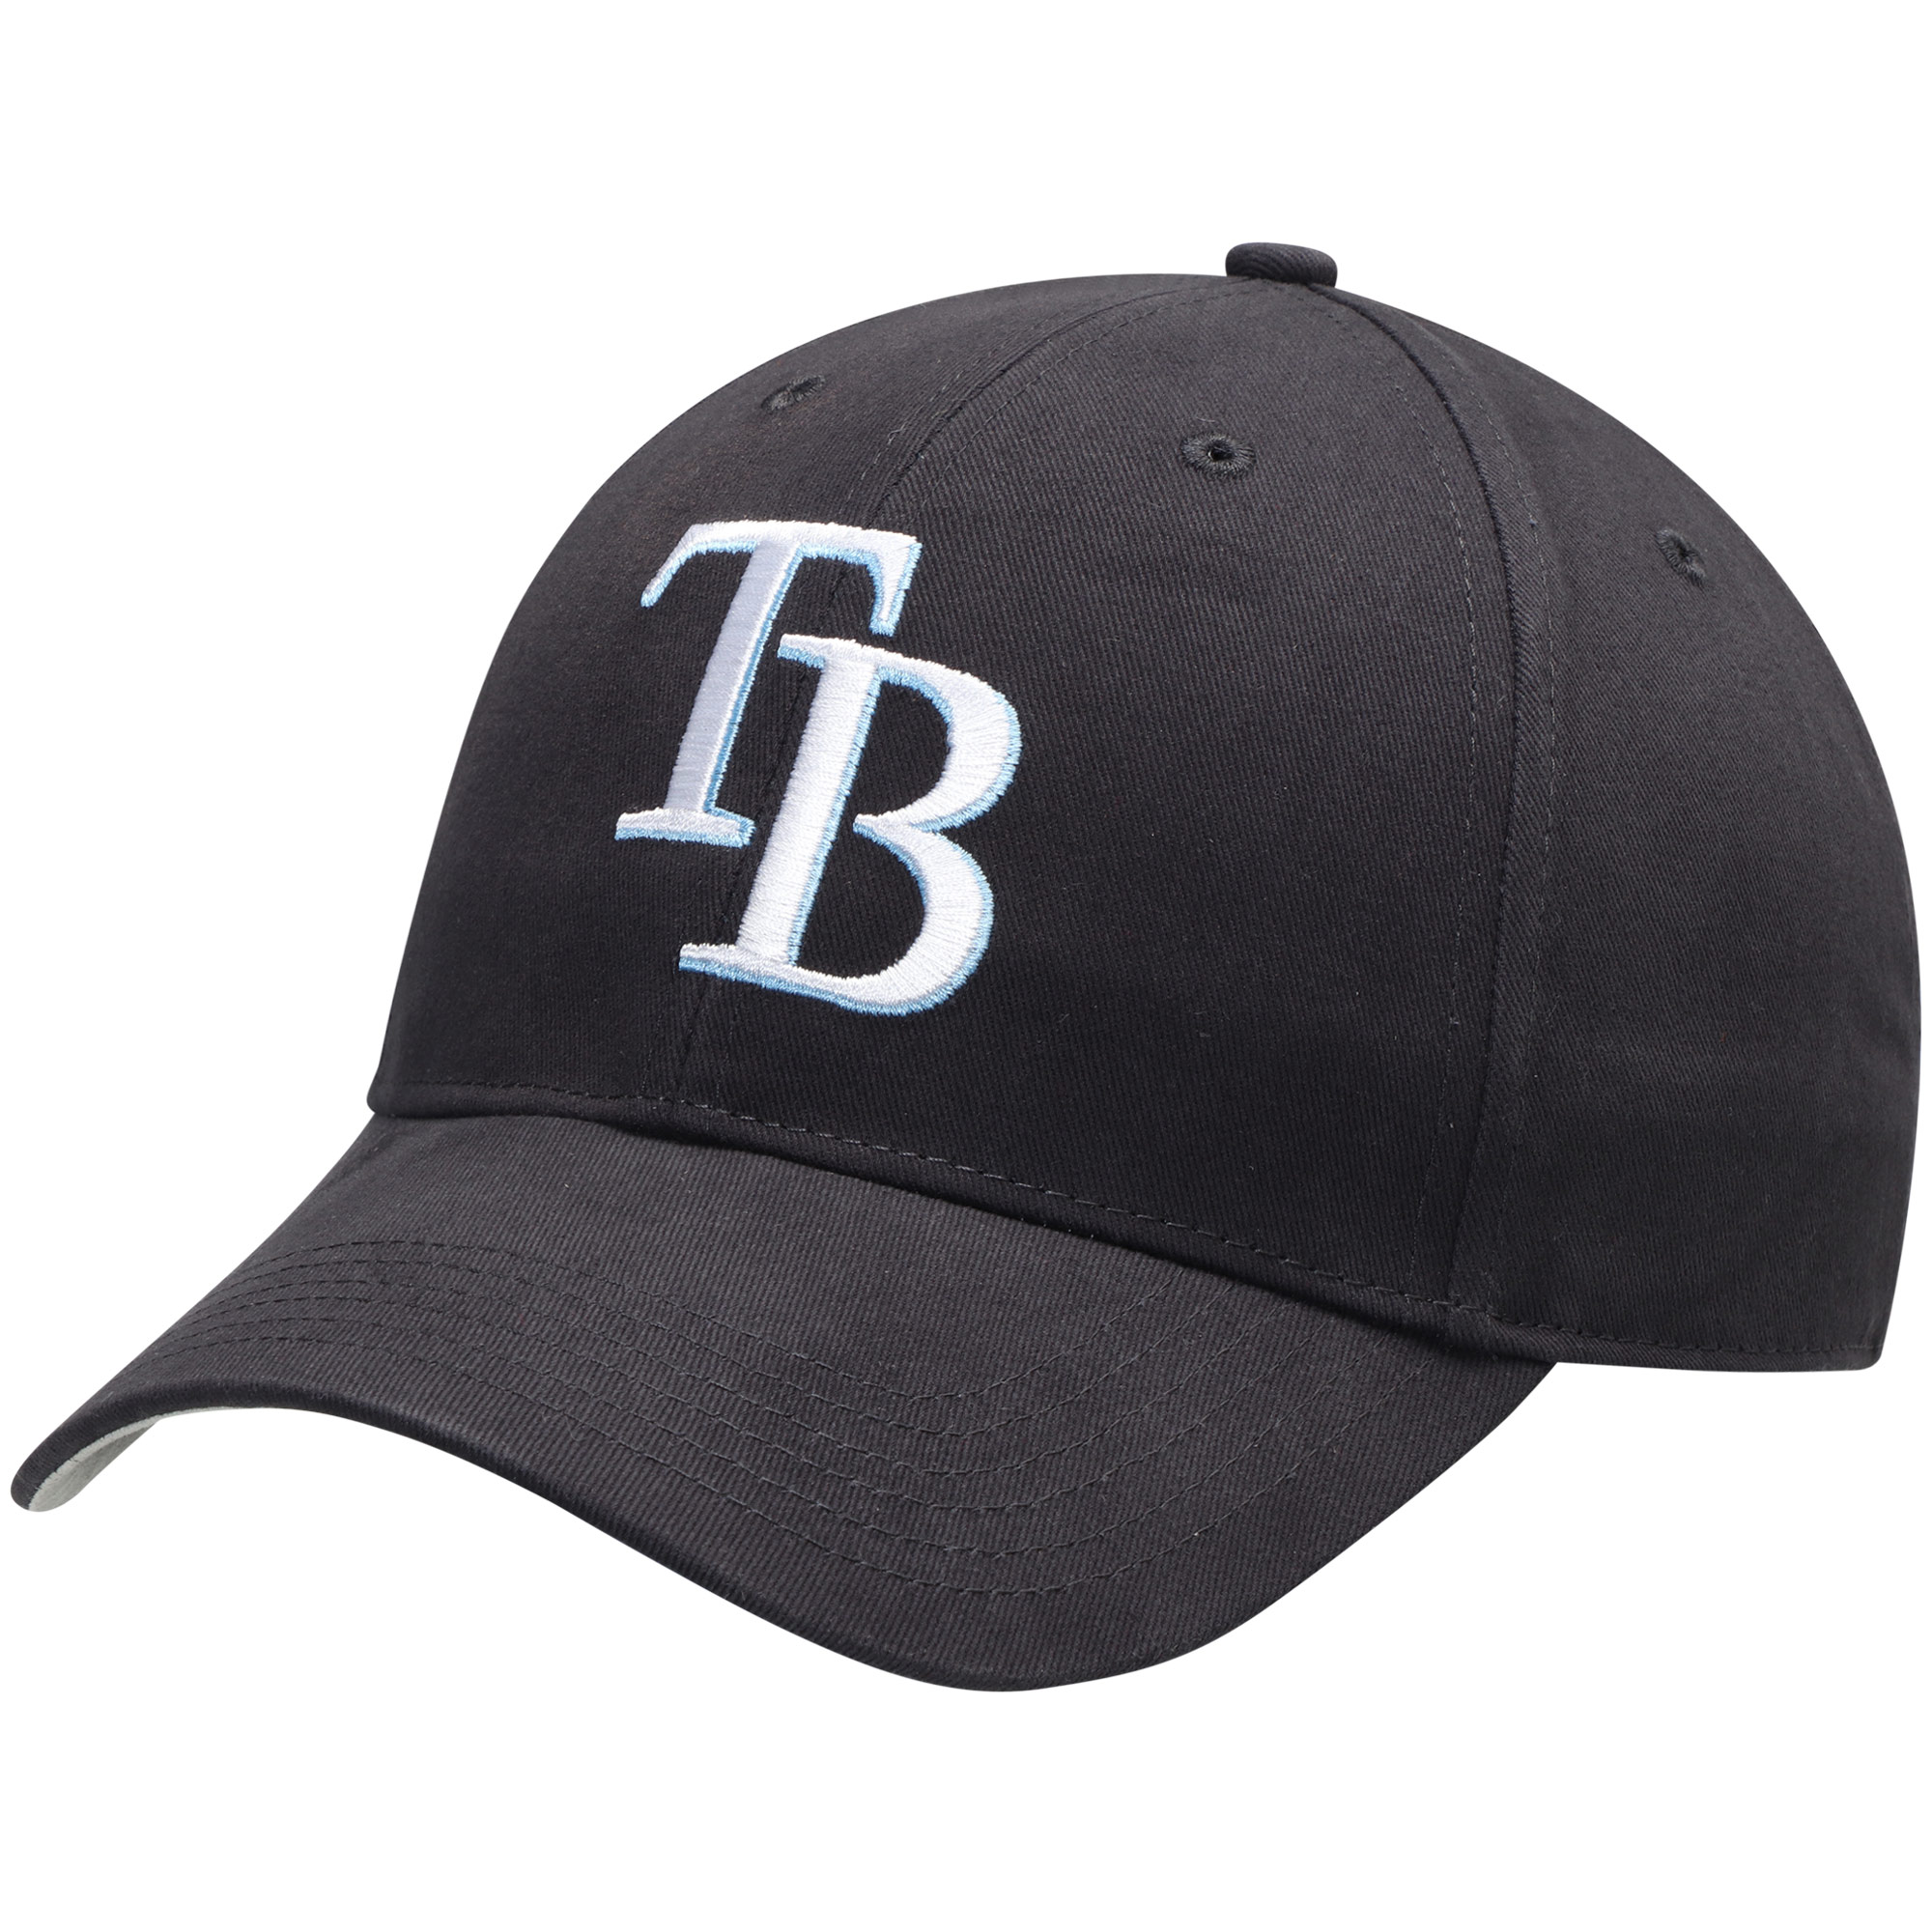 Tampa Bay Rays Fan Favorite Basic Adjustable Hat - Navy - OSFA